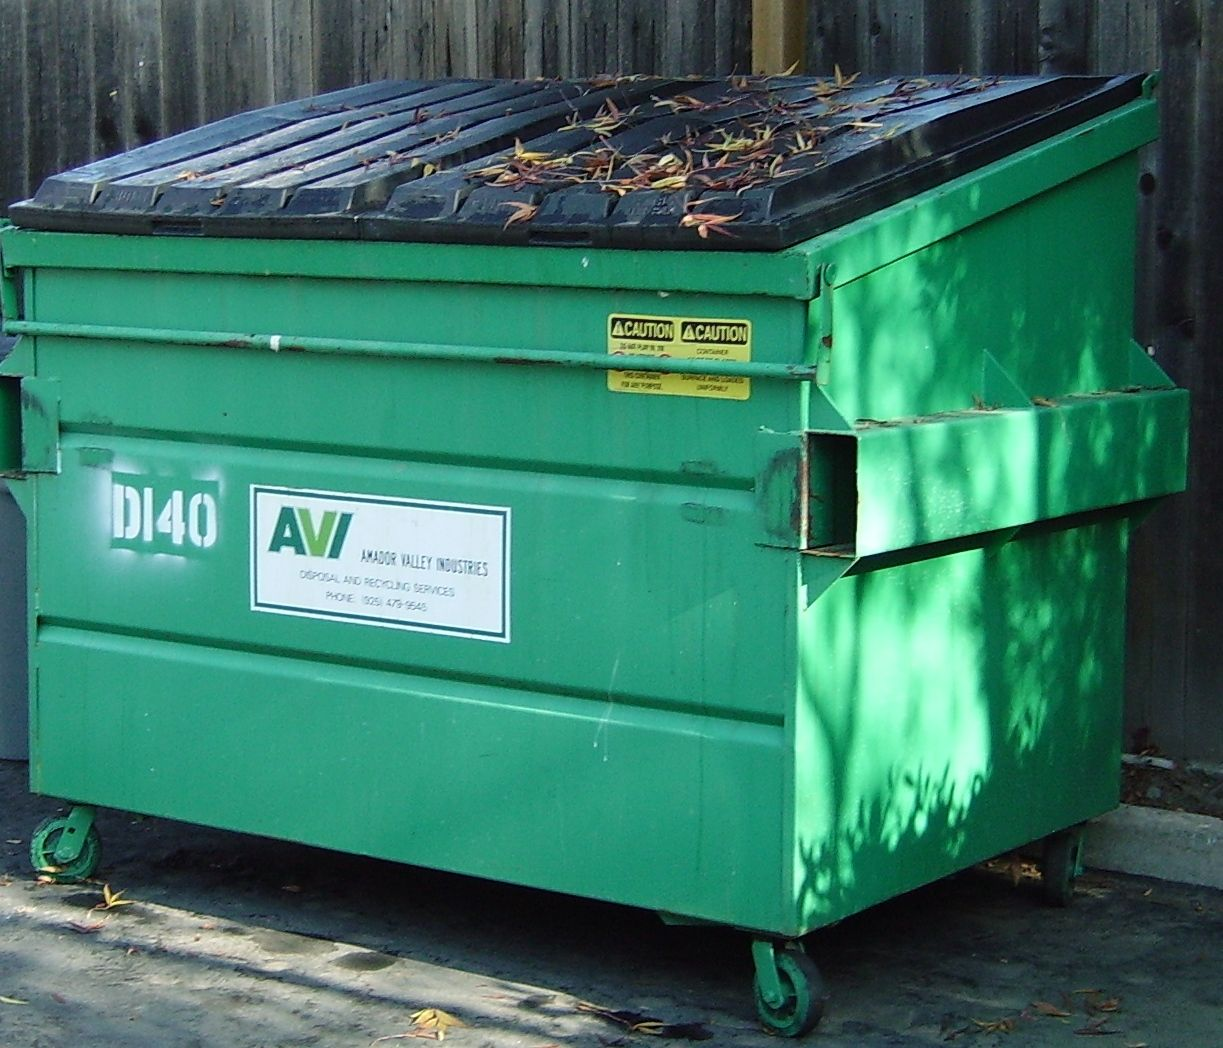 Image result for image of dumpster